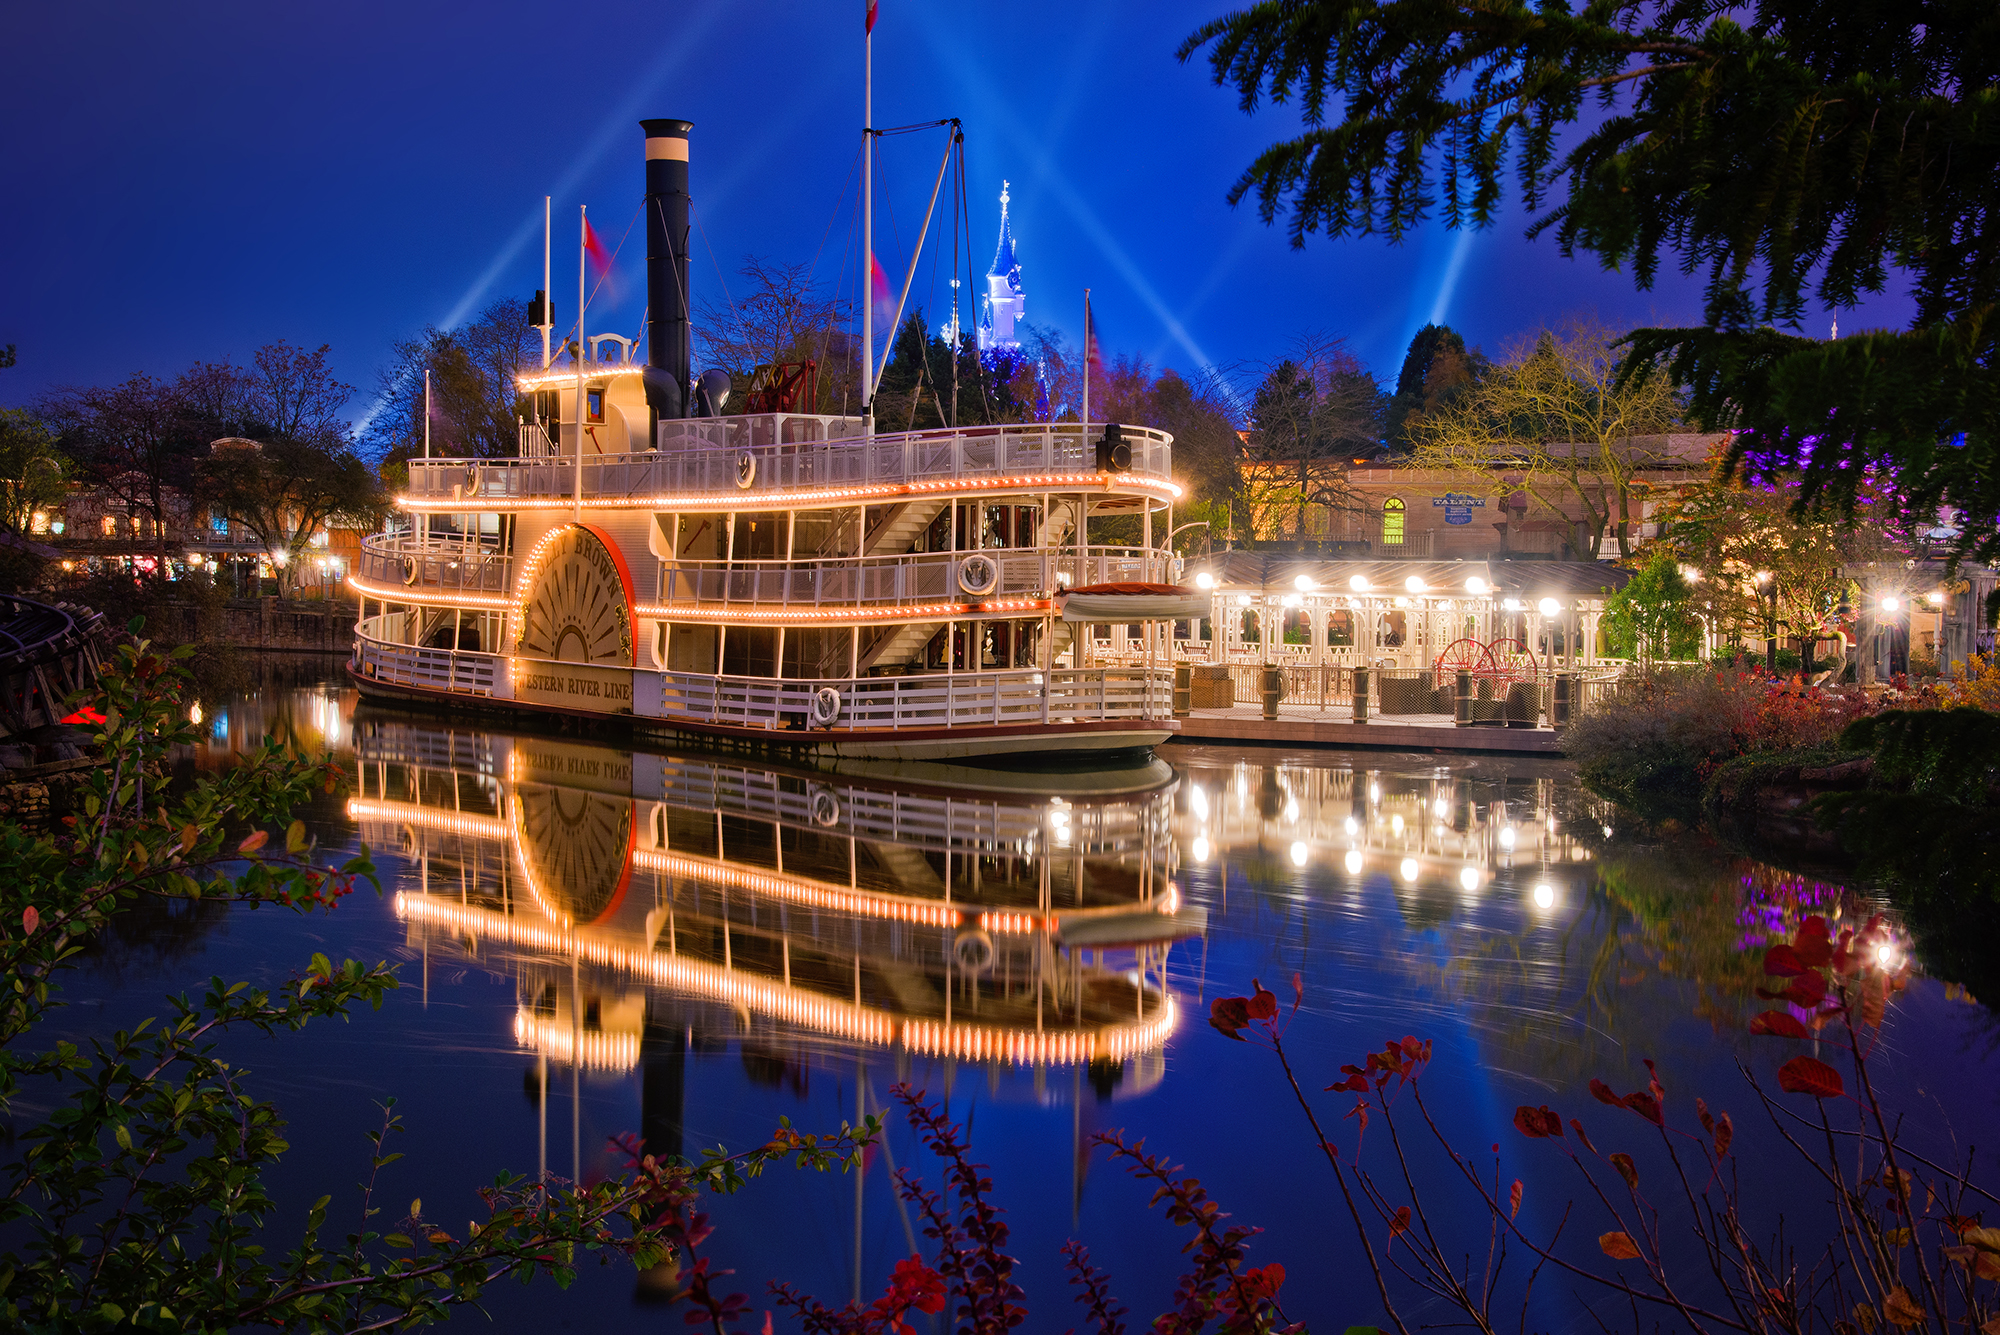 Cute Background Wallpaper For Computer Christmas Lights Animal Hd The Molly Brown At Disneyland Paris Travel Caffeine